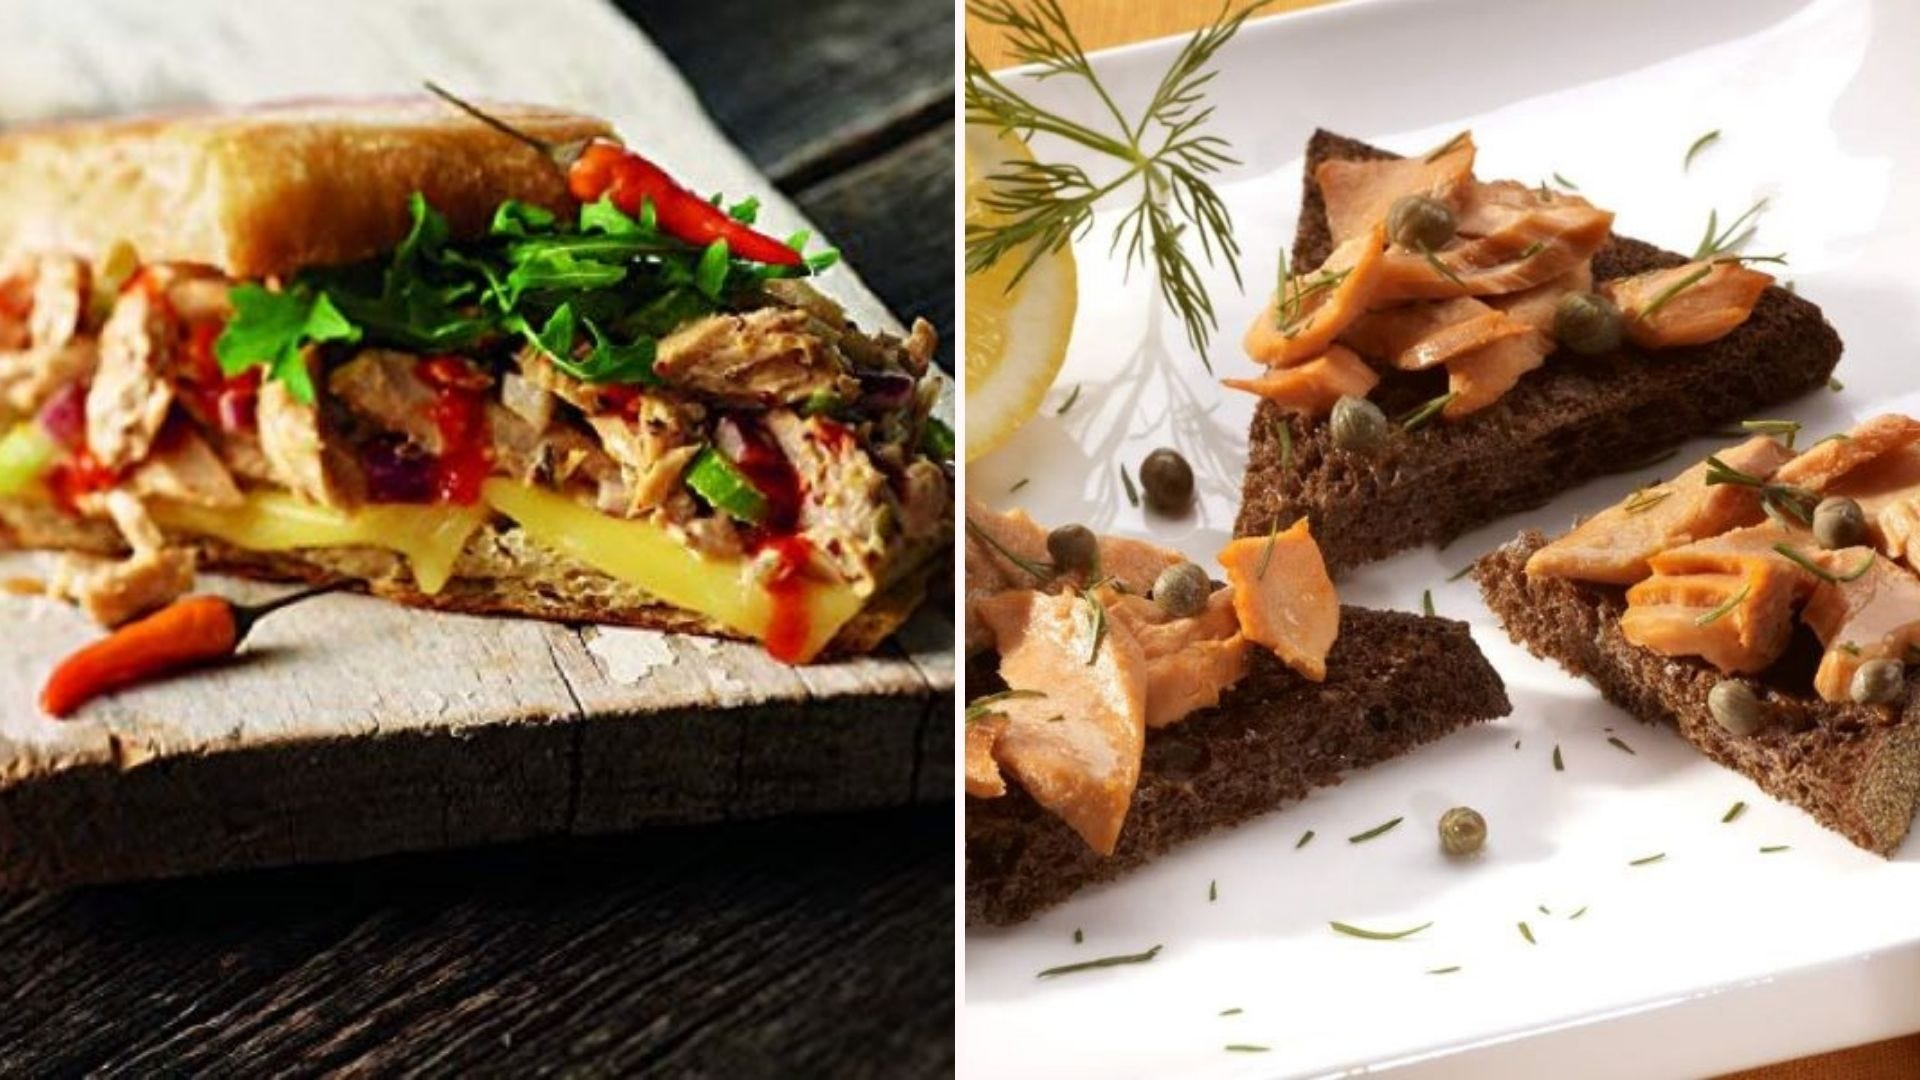 Wild Planet tuna on a sandwich, and Wild Planet Salmon on three slices of wheat bread.